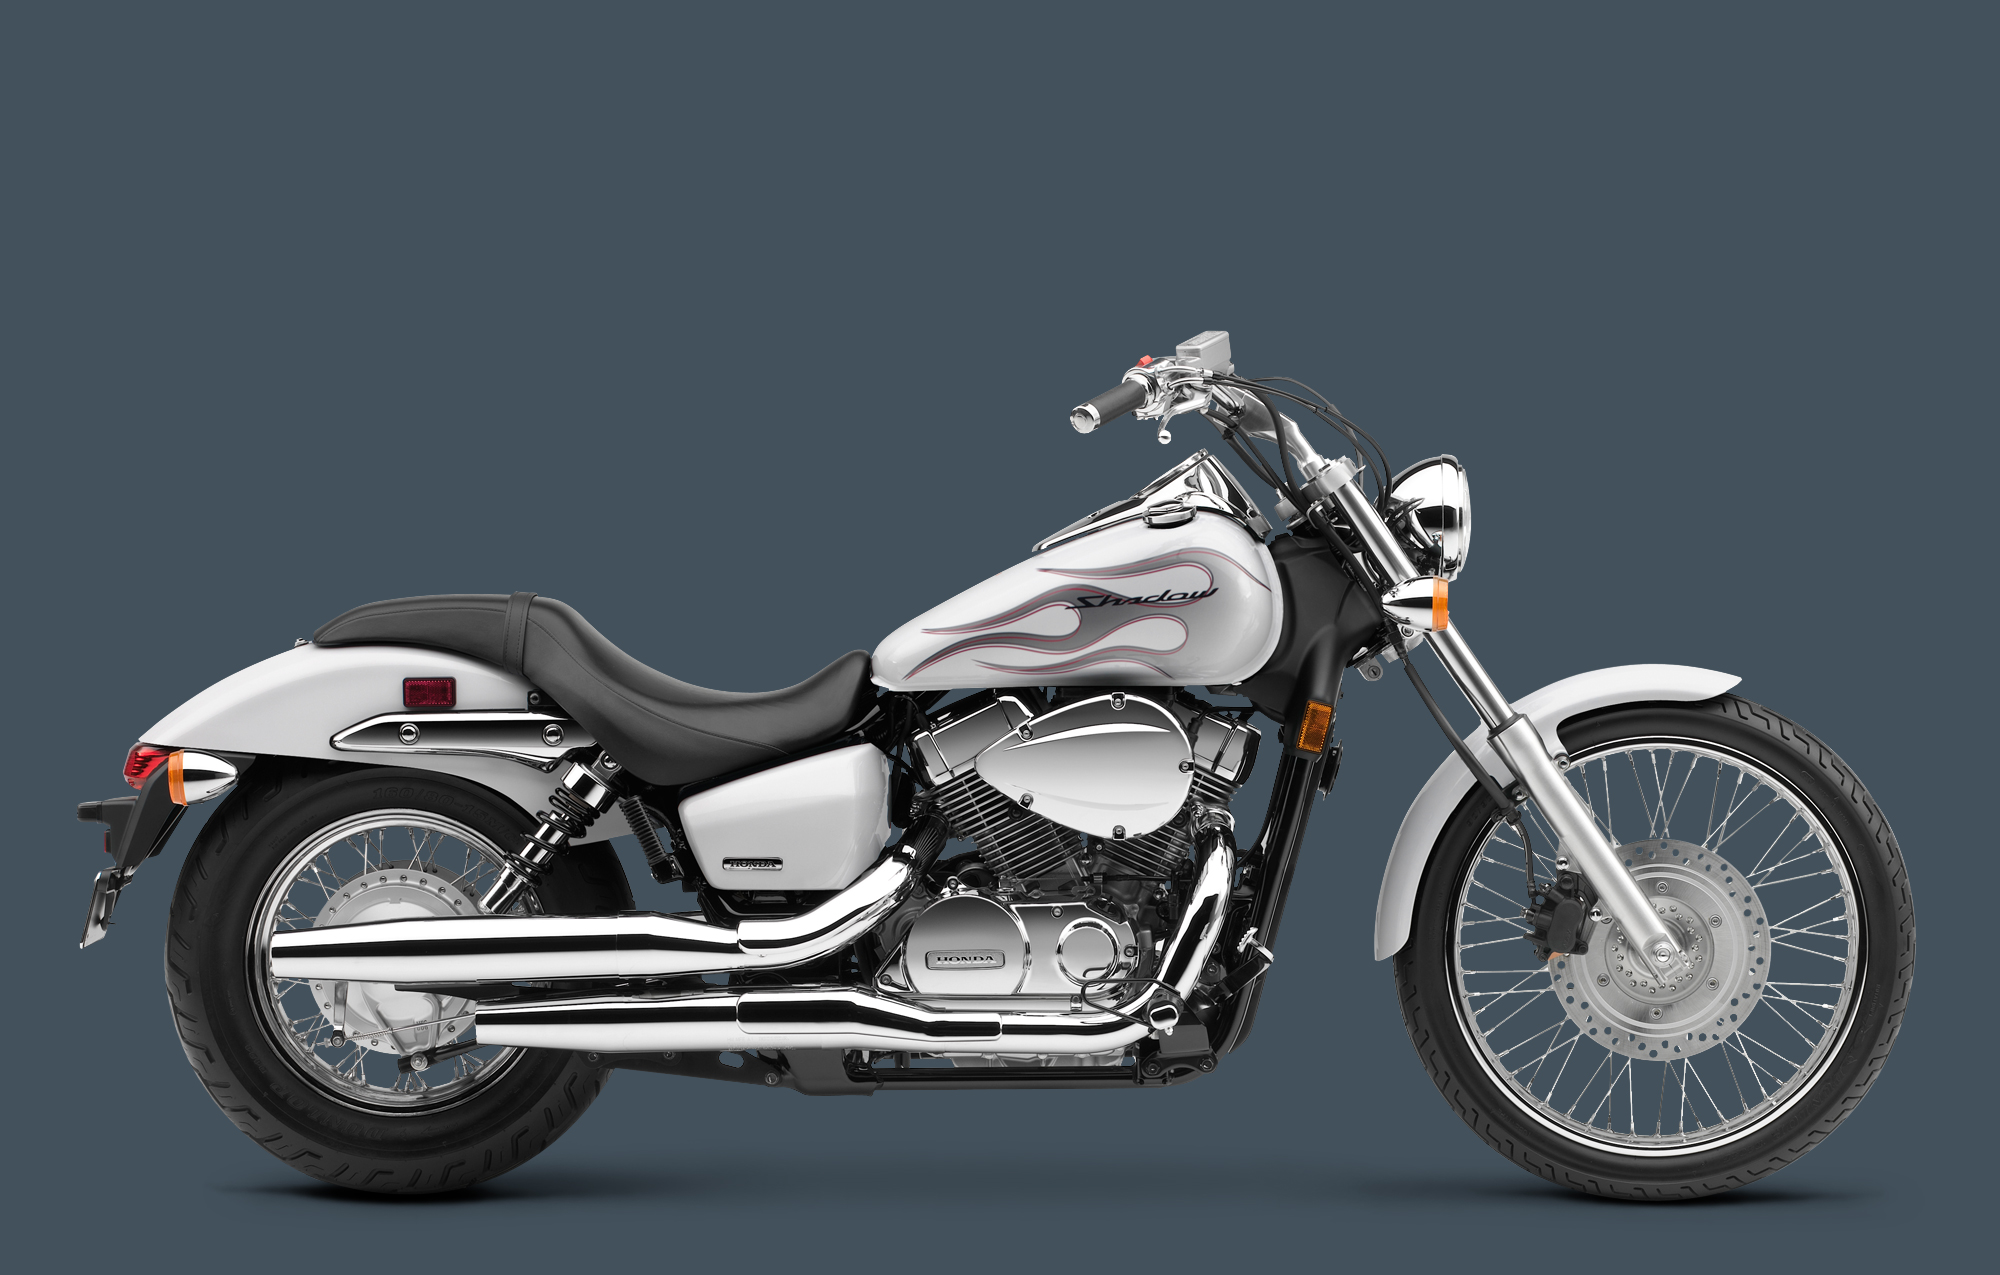 2009 Honda Shadow Spirit 750 C2 | Top Speed